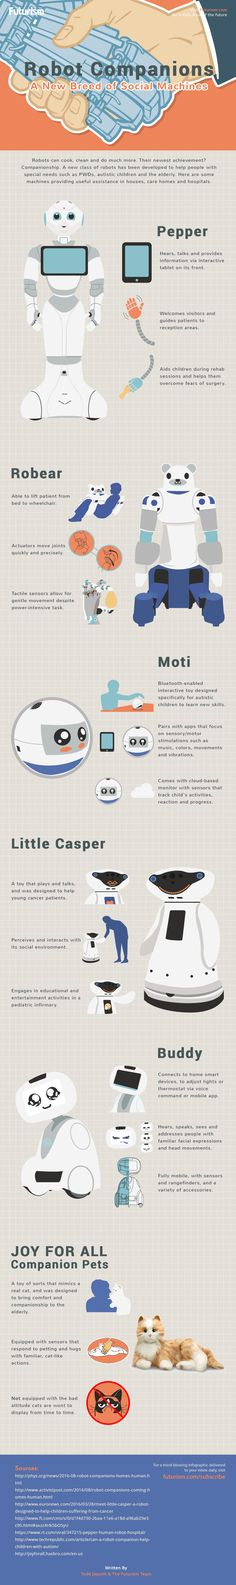 Forget Gort, T-1000, and, you know…Arnold Schwarzenegger.    These robots are cute and cuddly.    http://futurism.com/images/robot-companions-a-new-breed-of-social-machines-infographic/?utm_campaign=coschedule&utm_source=pinterest&utm_medium=Futurism&utm_content=Robot%20Companions%3A%20A%20New%20Breed%20of%20Social%20Machines%20%5BINFOGRAPHIC%5D